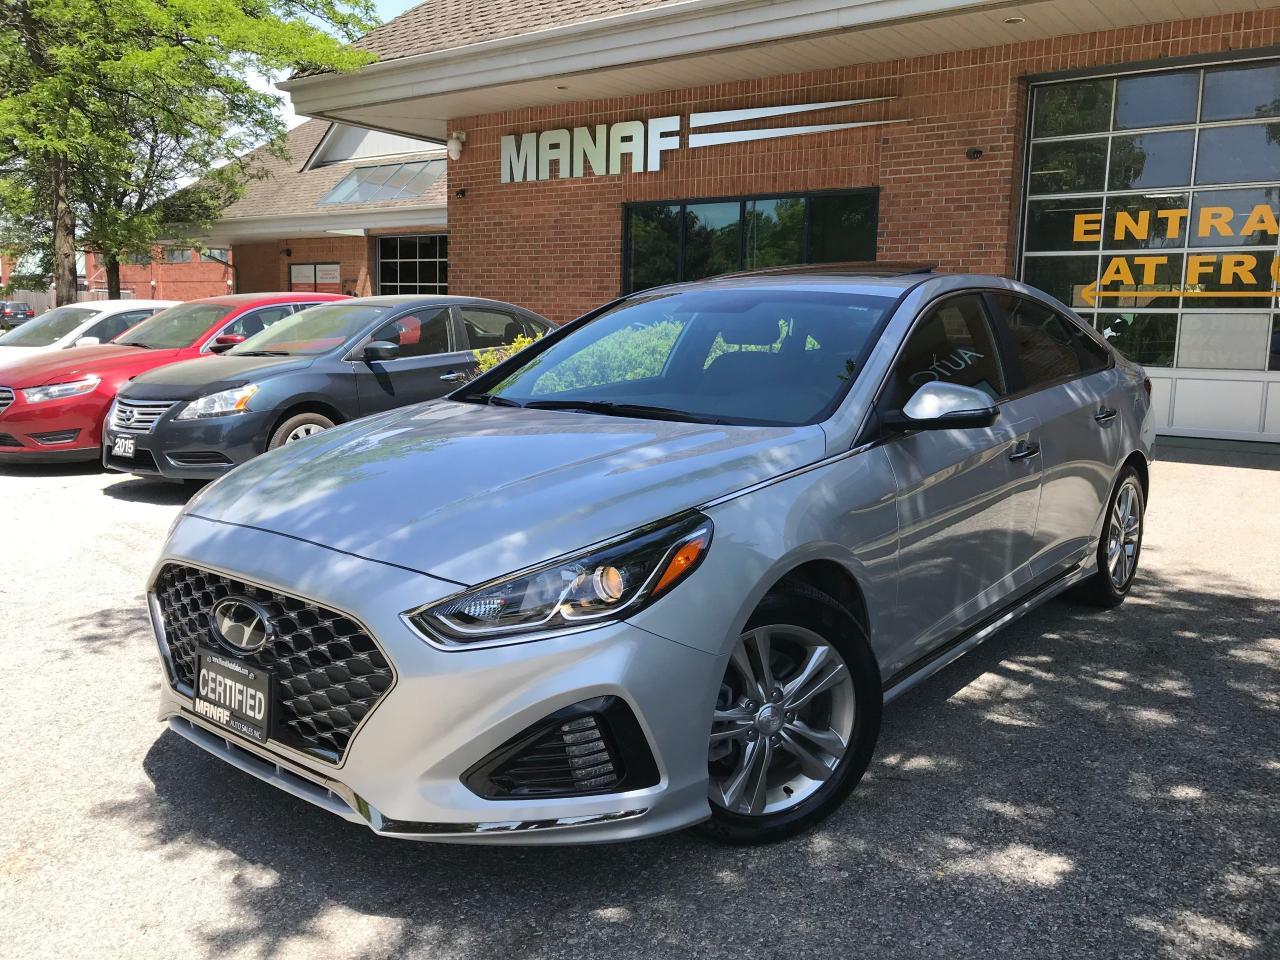 Used 2018 Hyundai Sonata Limited FWD For Sale in Waterloo, ON - CarGurus